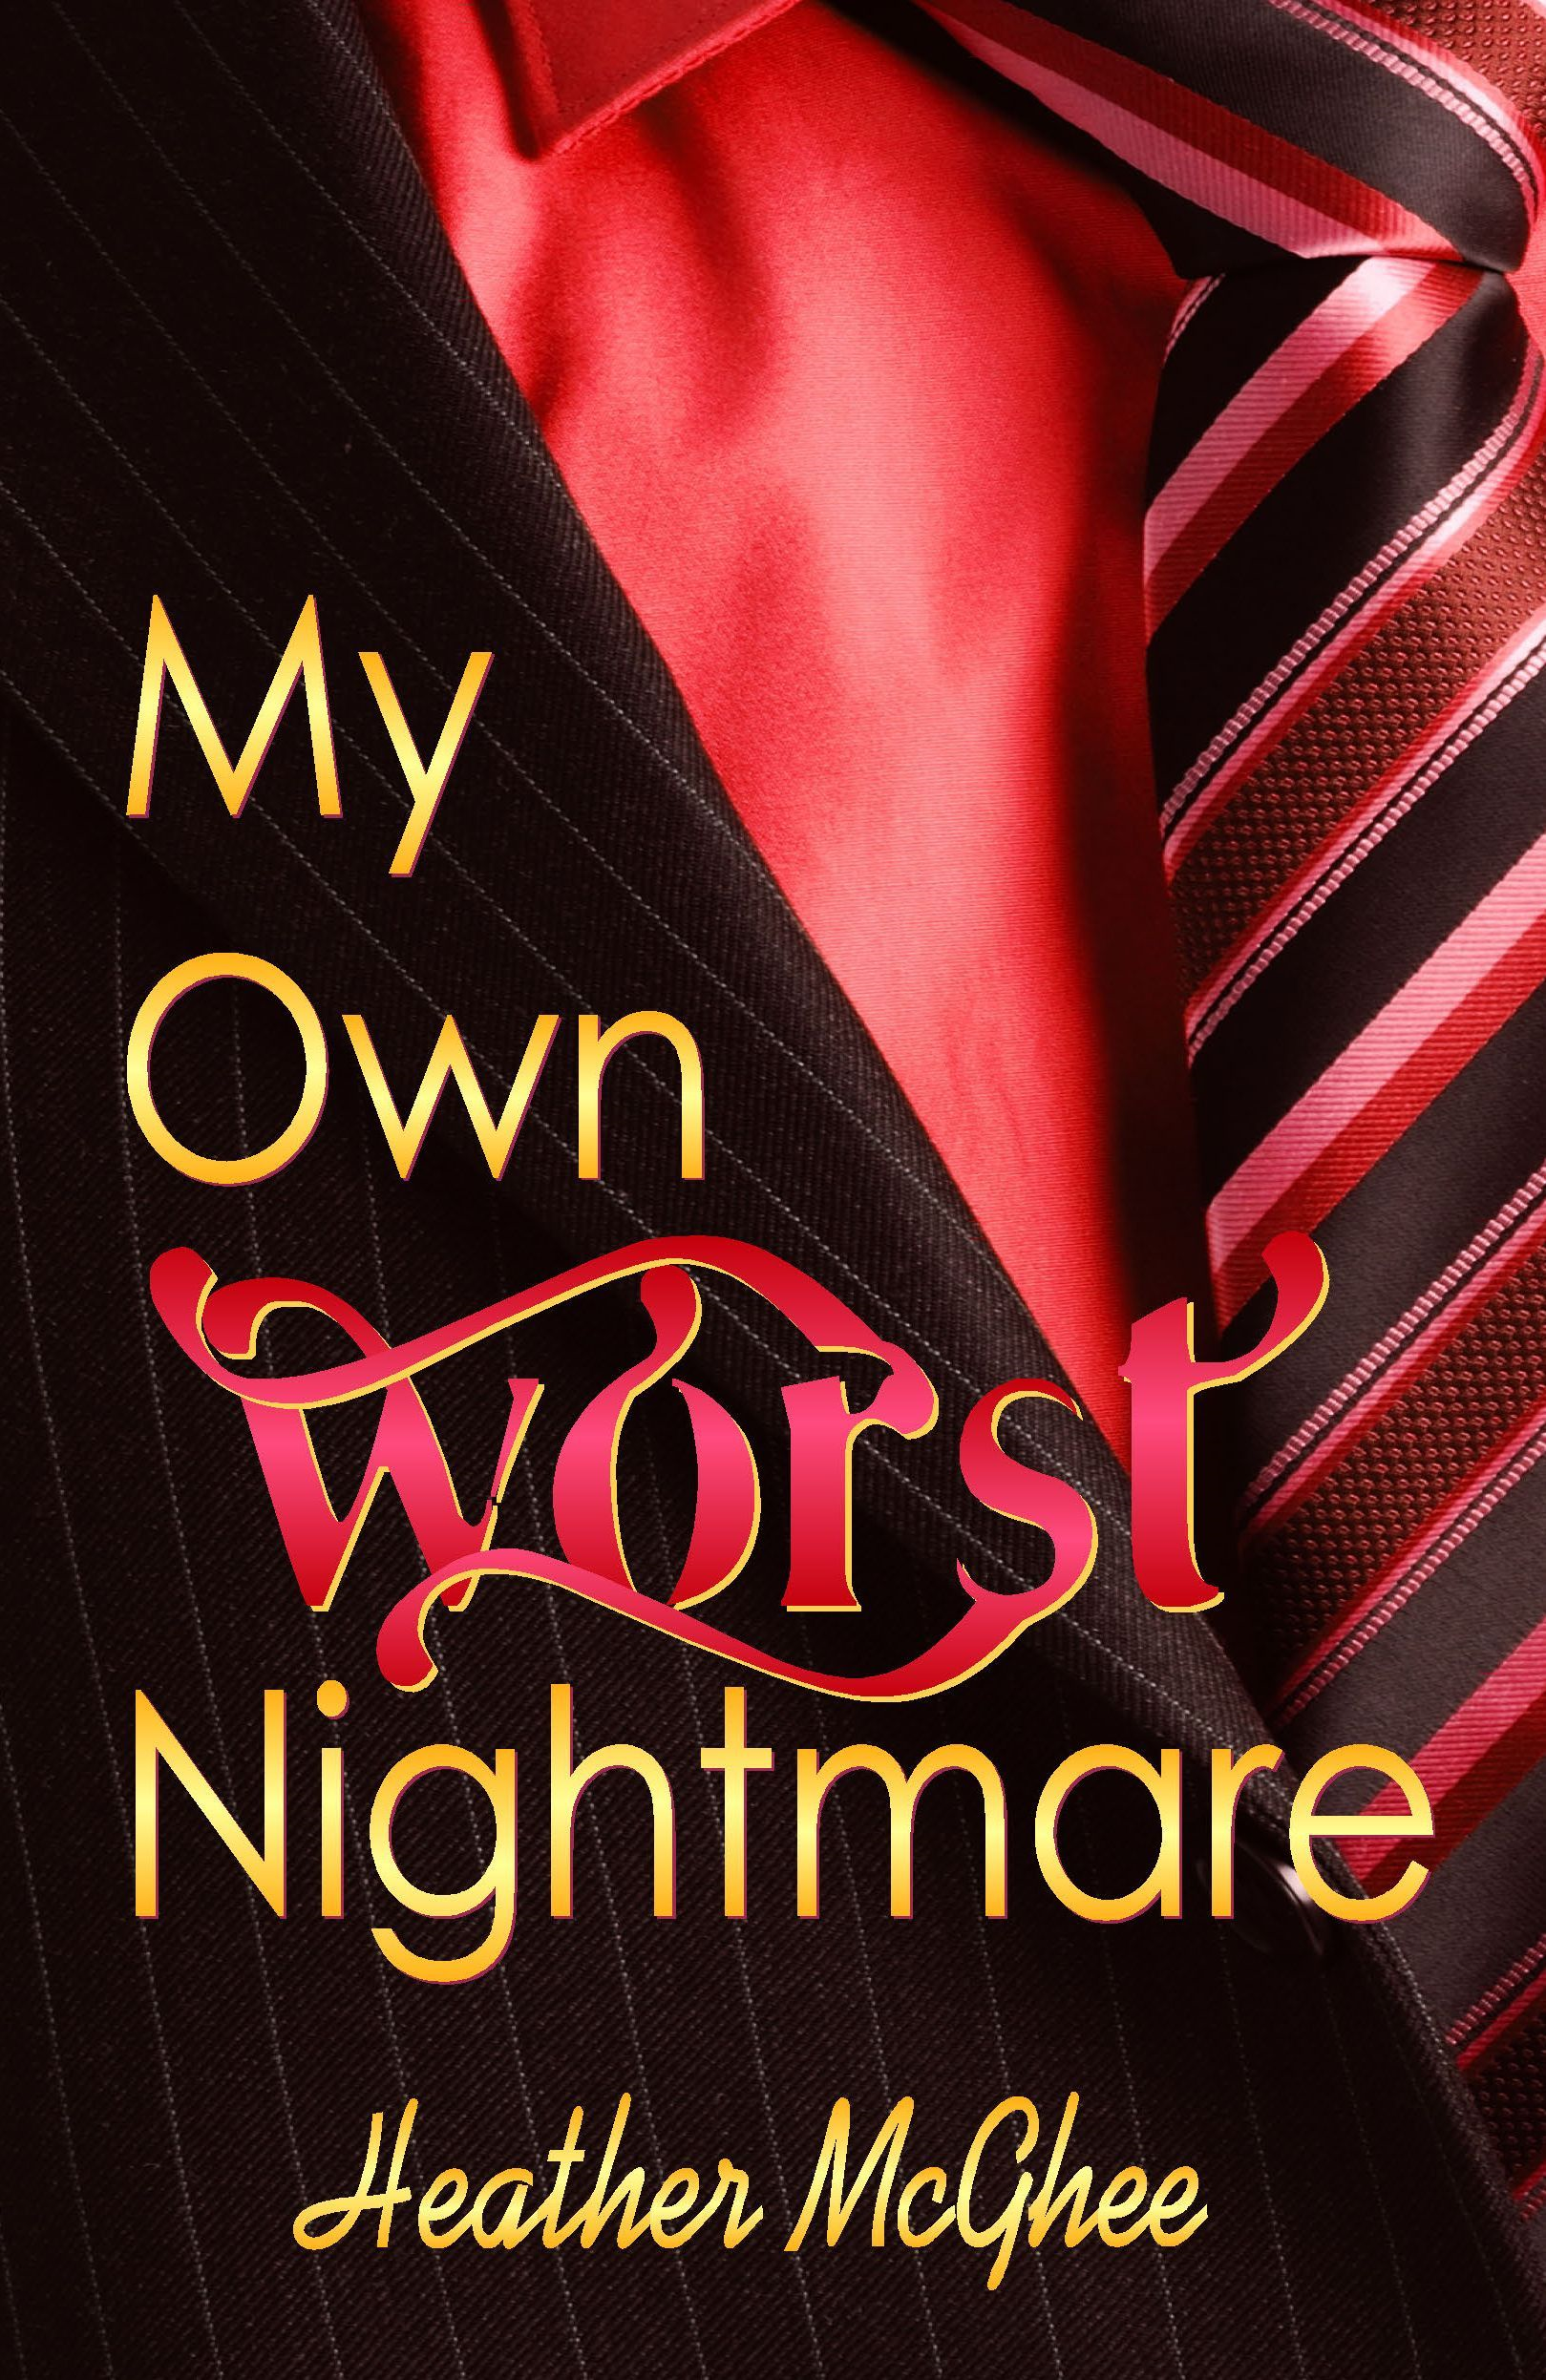 My Own Worst Nightmare By: Heather McGhee